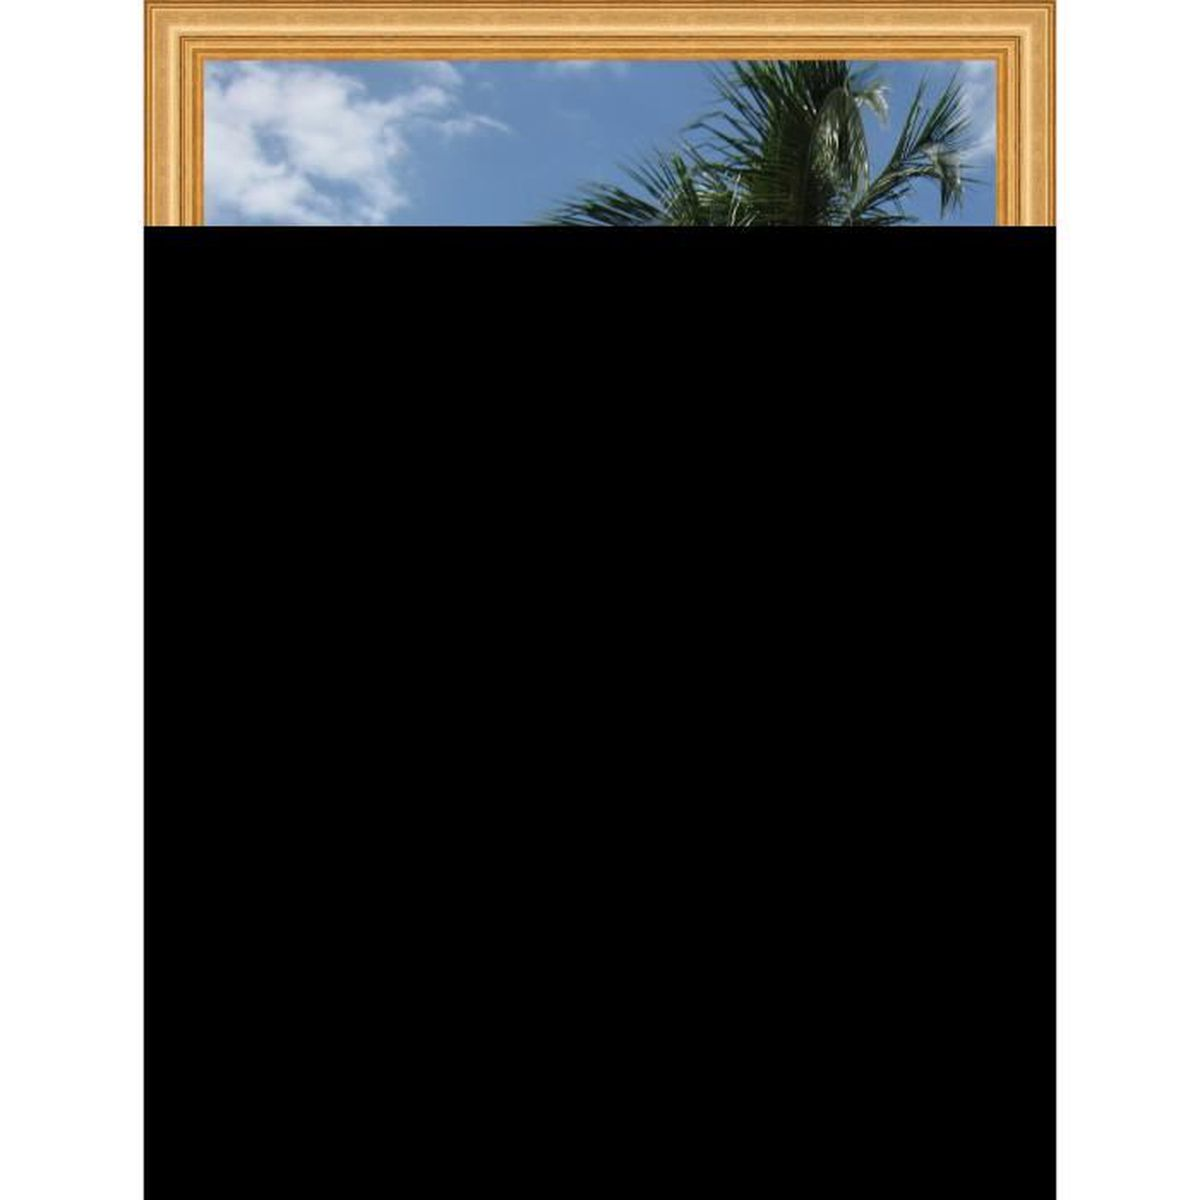 simple banc cadre photo mural x x cadre or clas with cadre photo 50x75. Black Bedroom Furniture Sets. Home Design Ideas